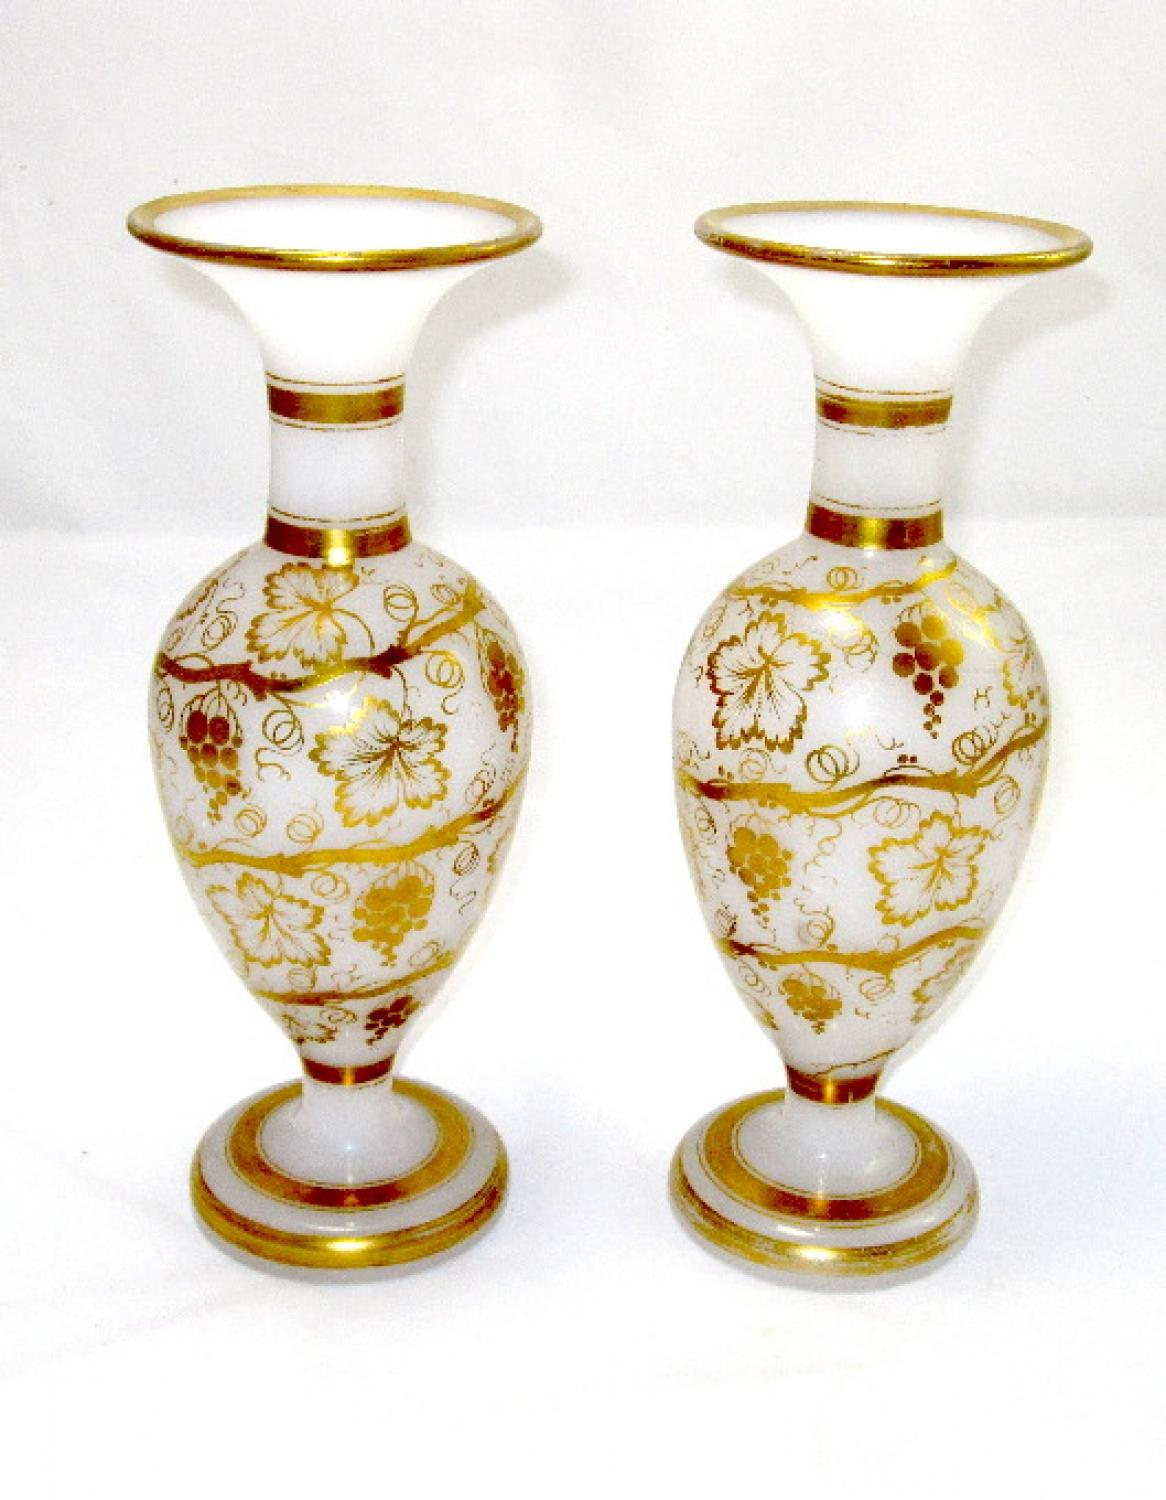 Antique Pair of Opaline Glass Vases